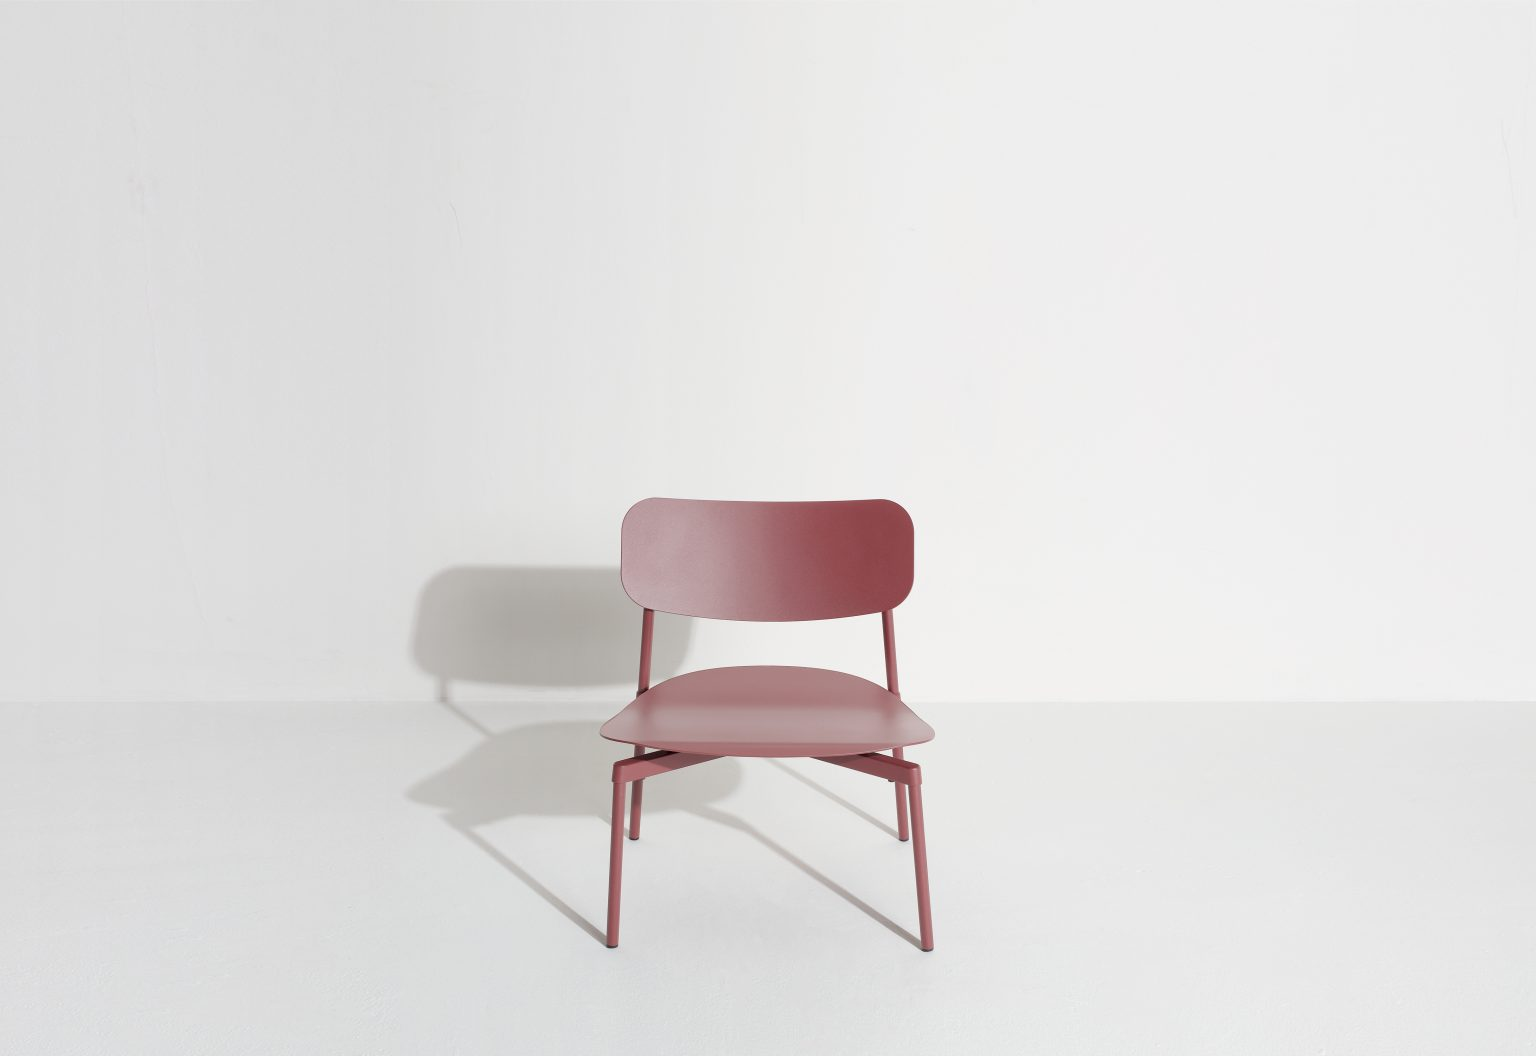 Biennale Interieur - Belgium's leading design and interior event - M0810302_fromme_lounge_chair_brownred_©pf_packshot_hd.jpg